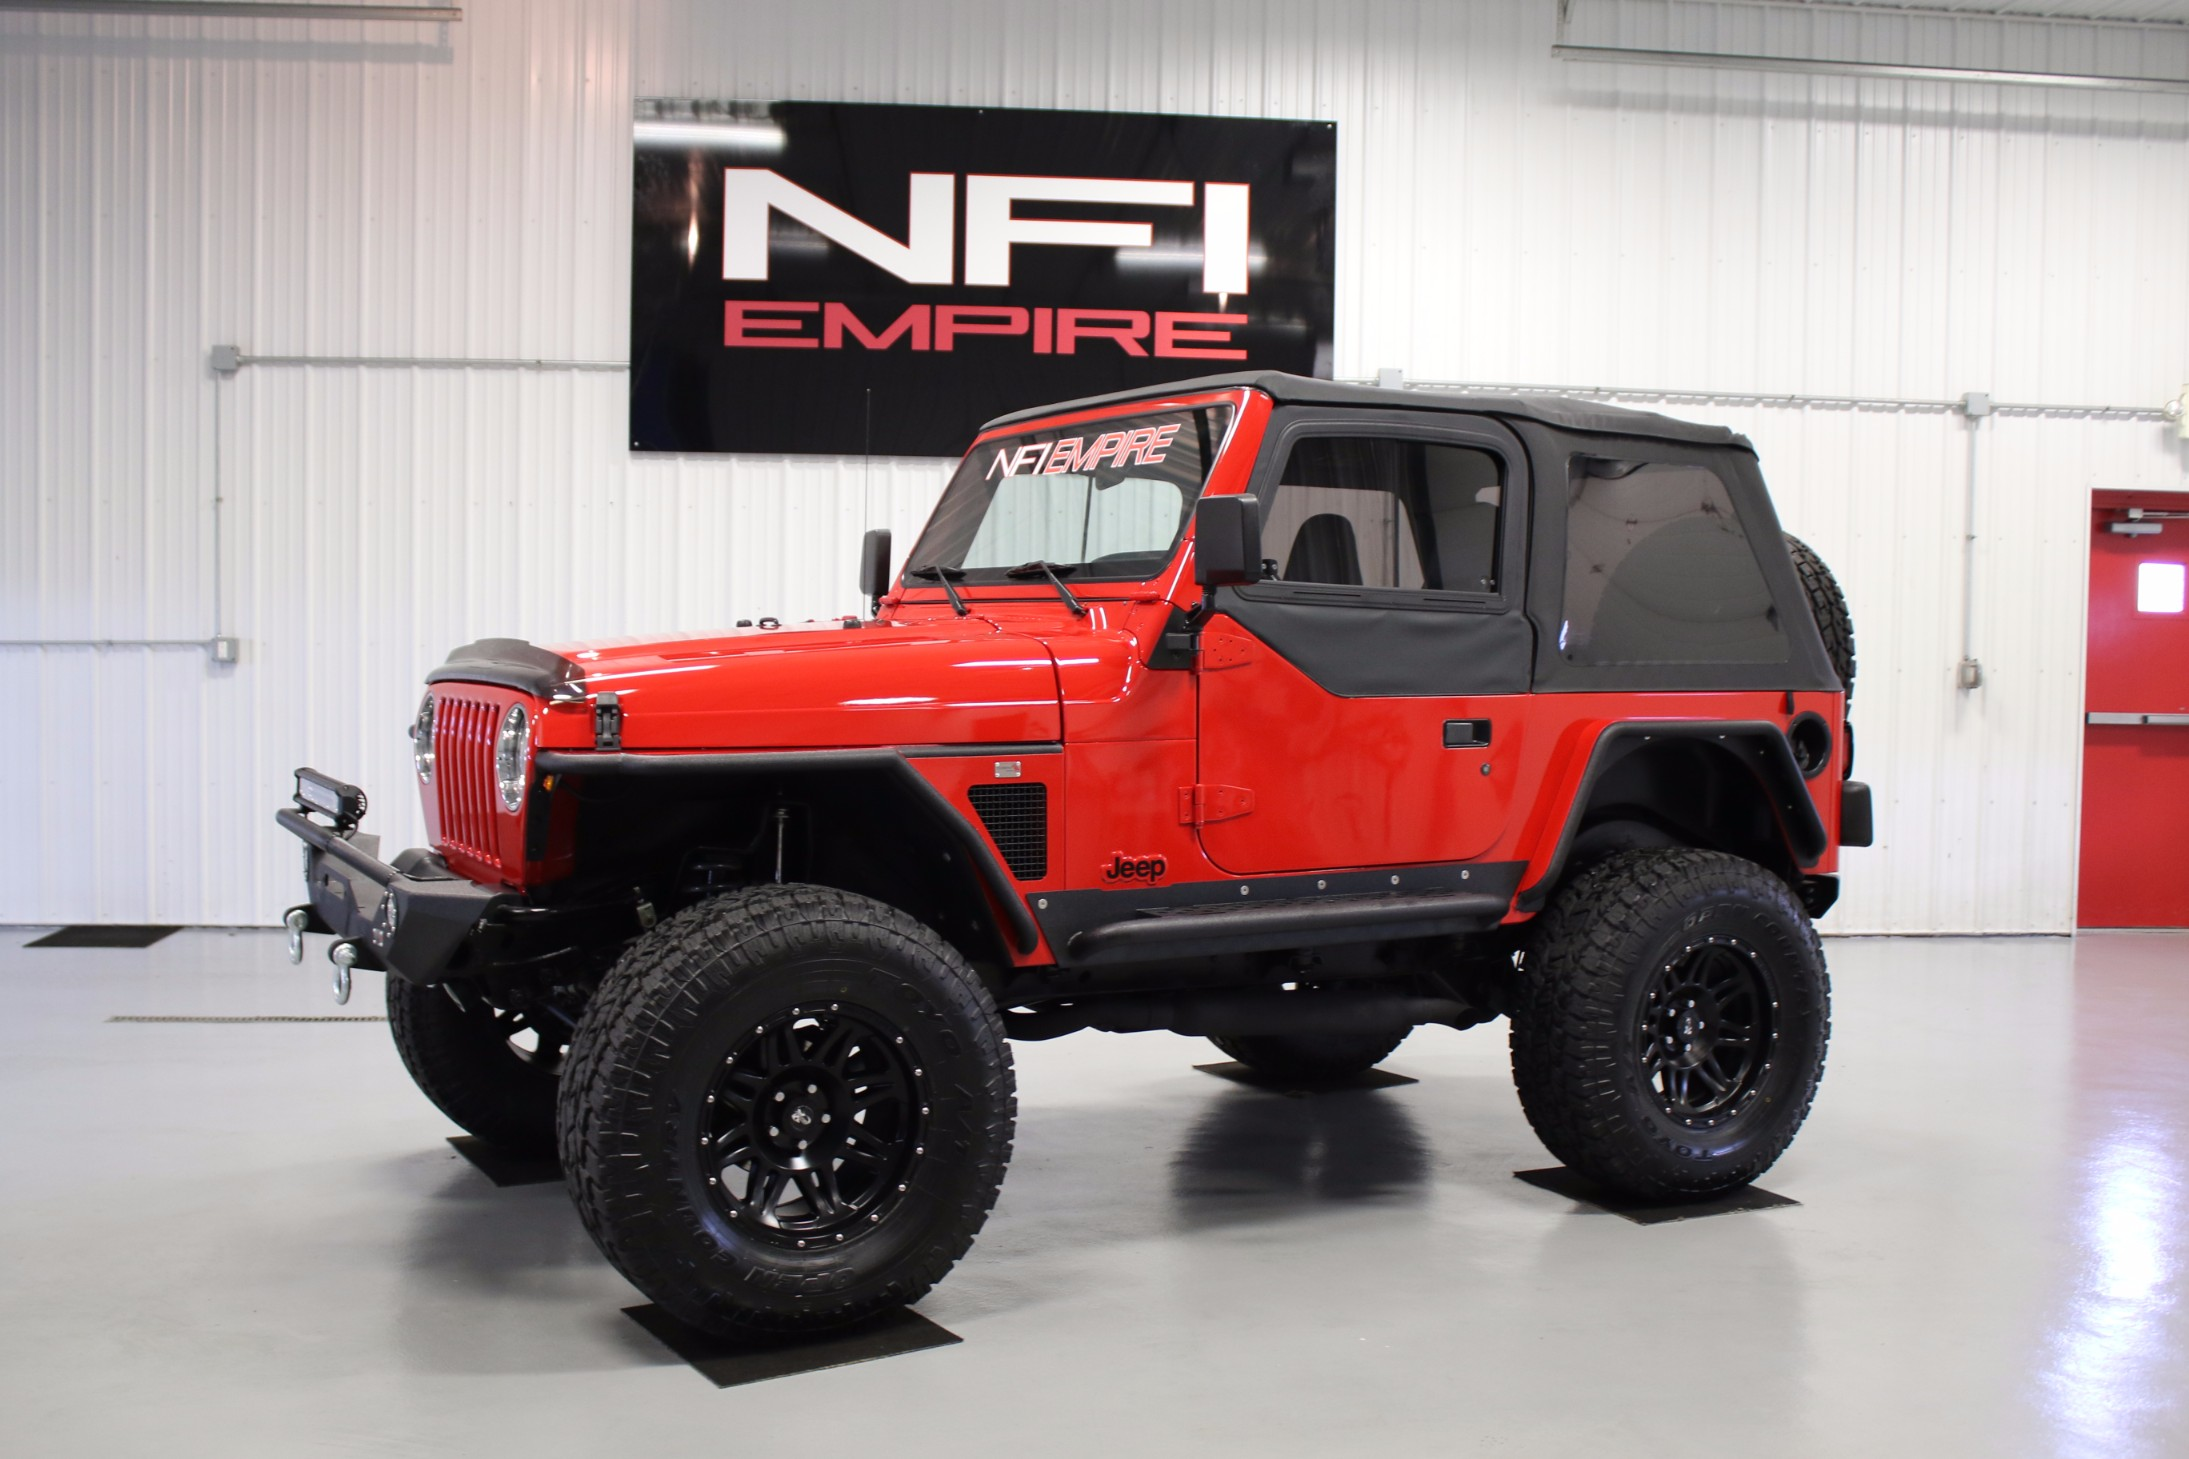 LS Swap Jeep - Click to View Build